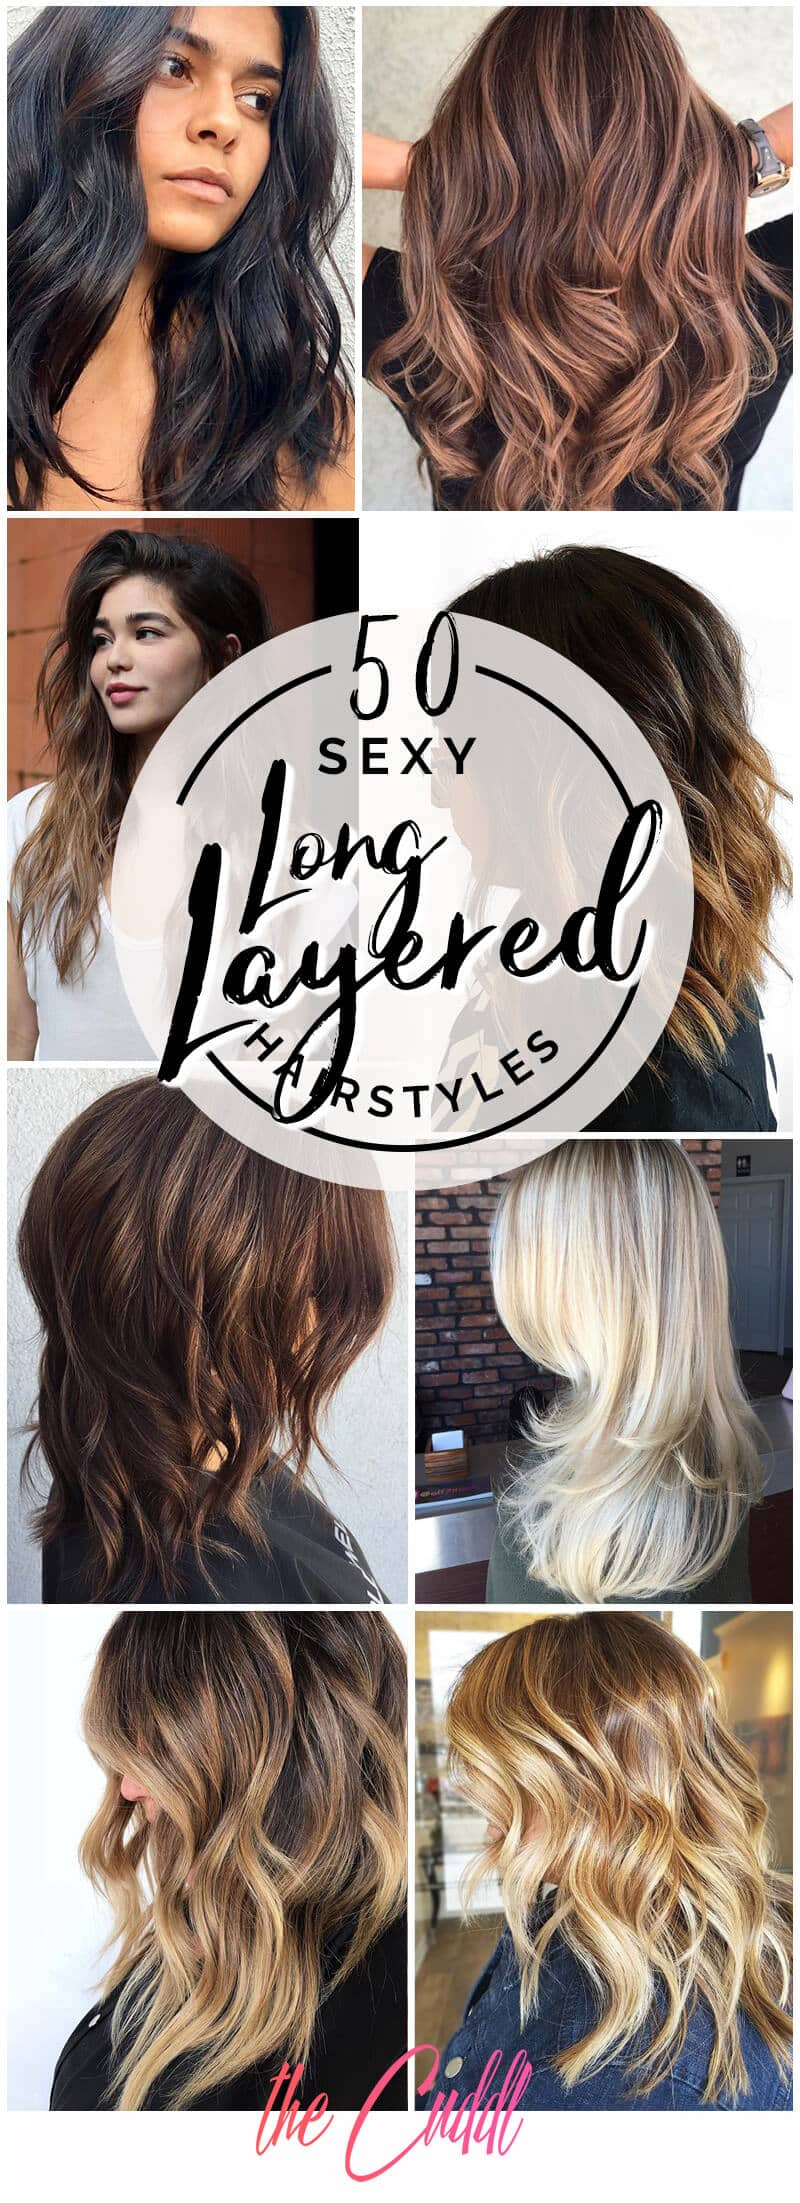 50 Sexy Long Layered Hair Ideas To Create Effortless Style In 2019